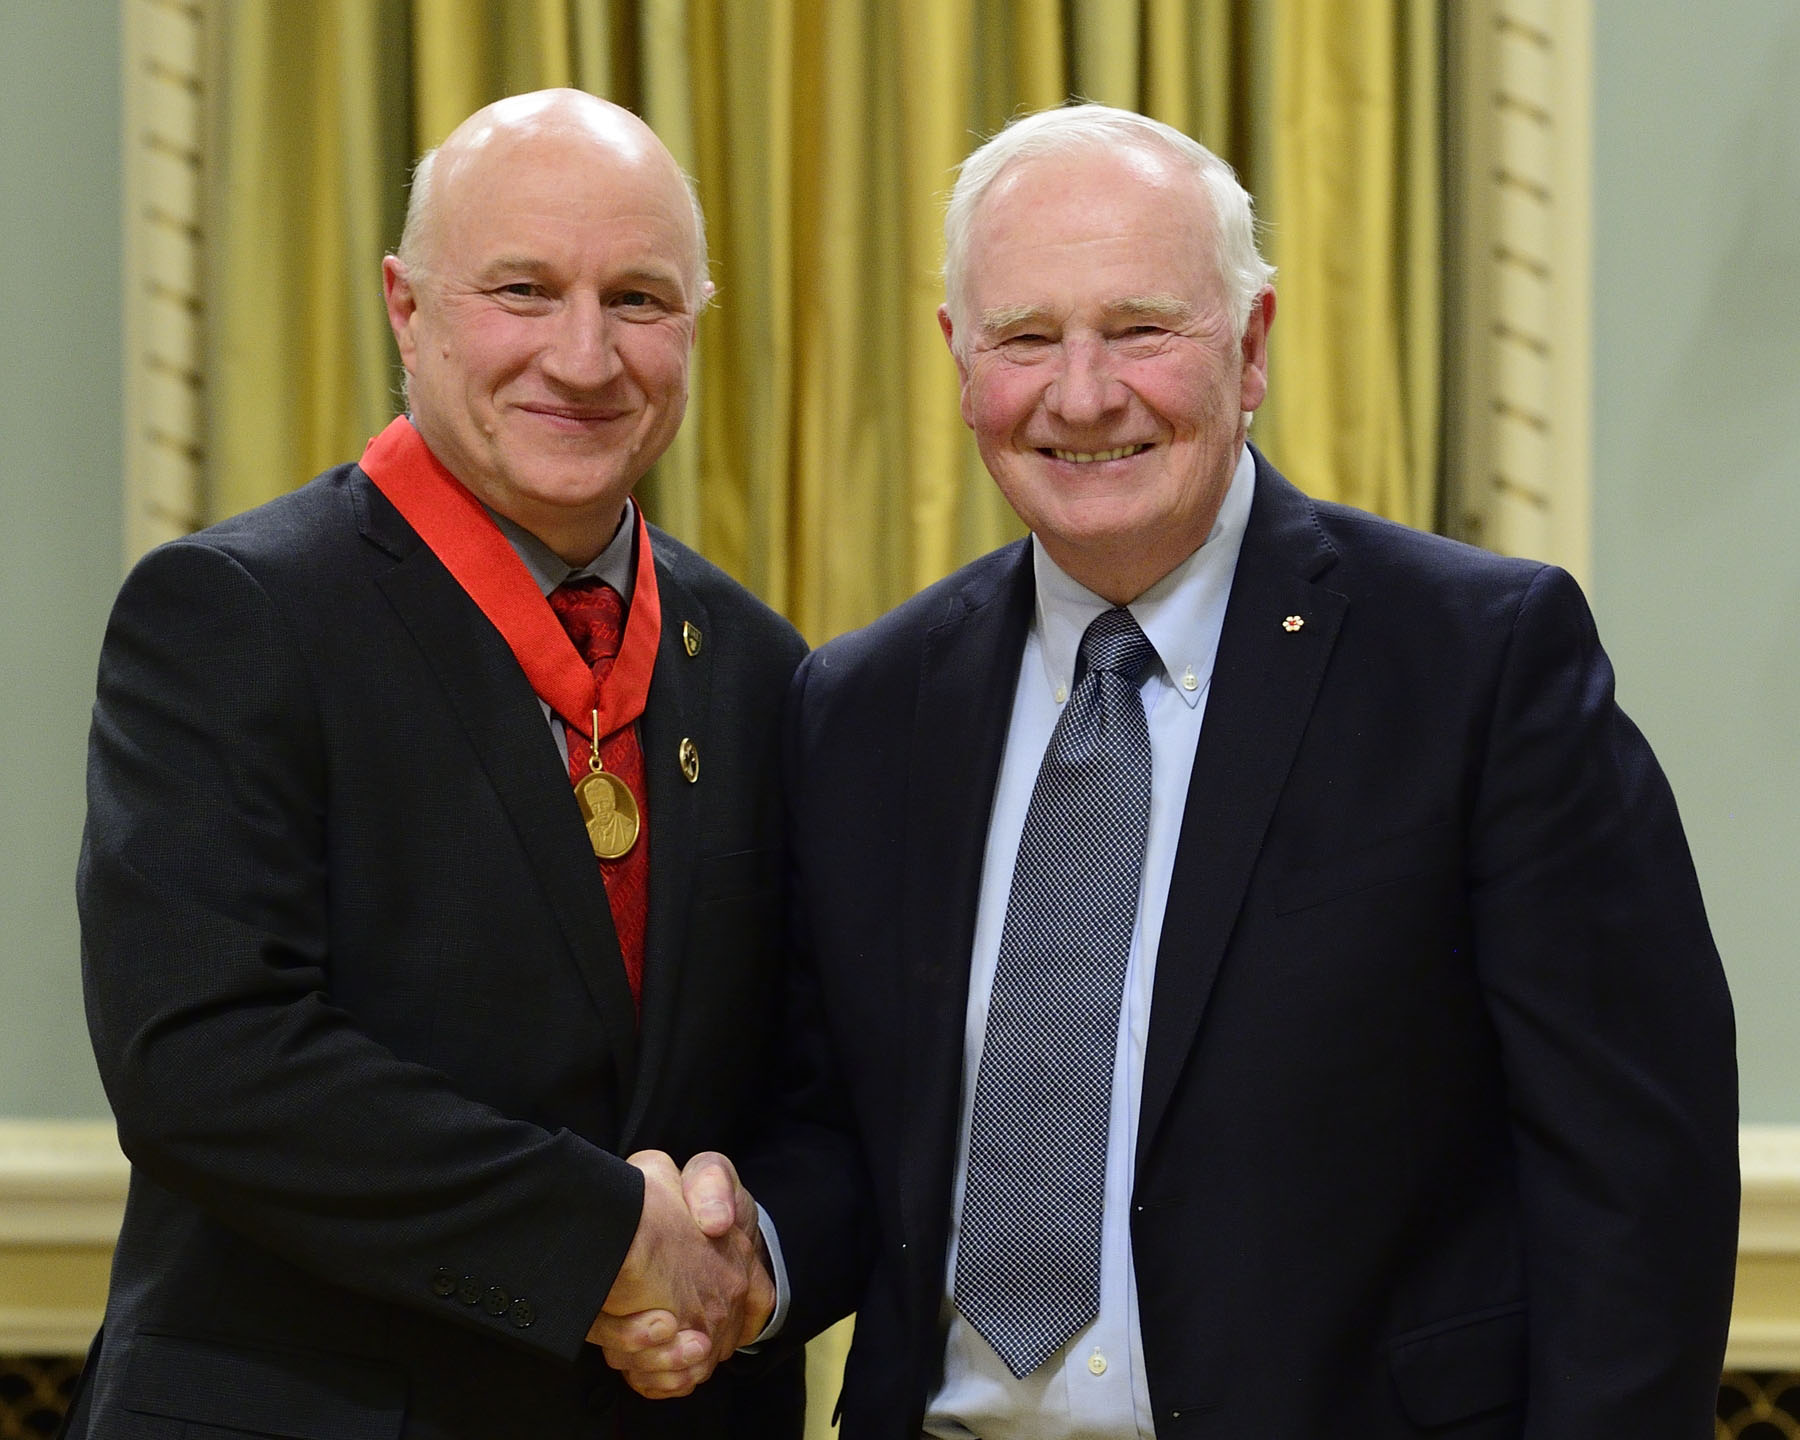 Jeff Dahn received the Gerhard Herzberg Canada Gold Medal for Science and Engineering. This prize is awarded annually for both the sustained excellence and overall influence of research work conducted in Canada in the natural sciences or engineering.